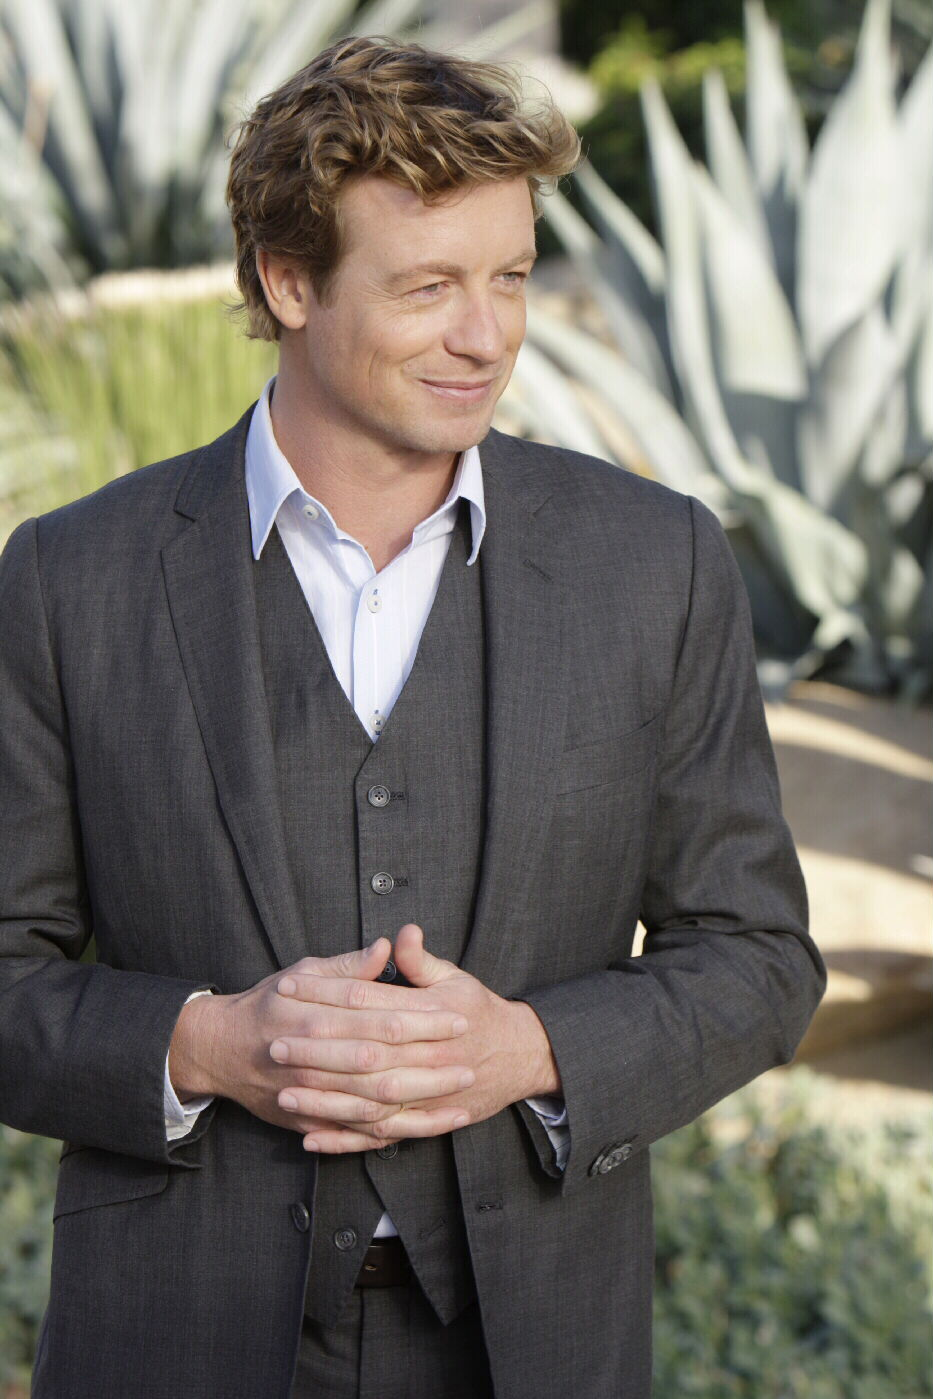 out The WBshop.com to get your copy of The Mentalist Season 1 on DVD